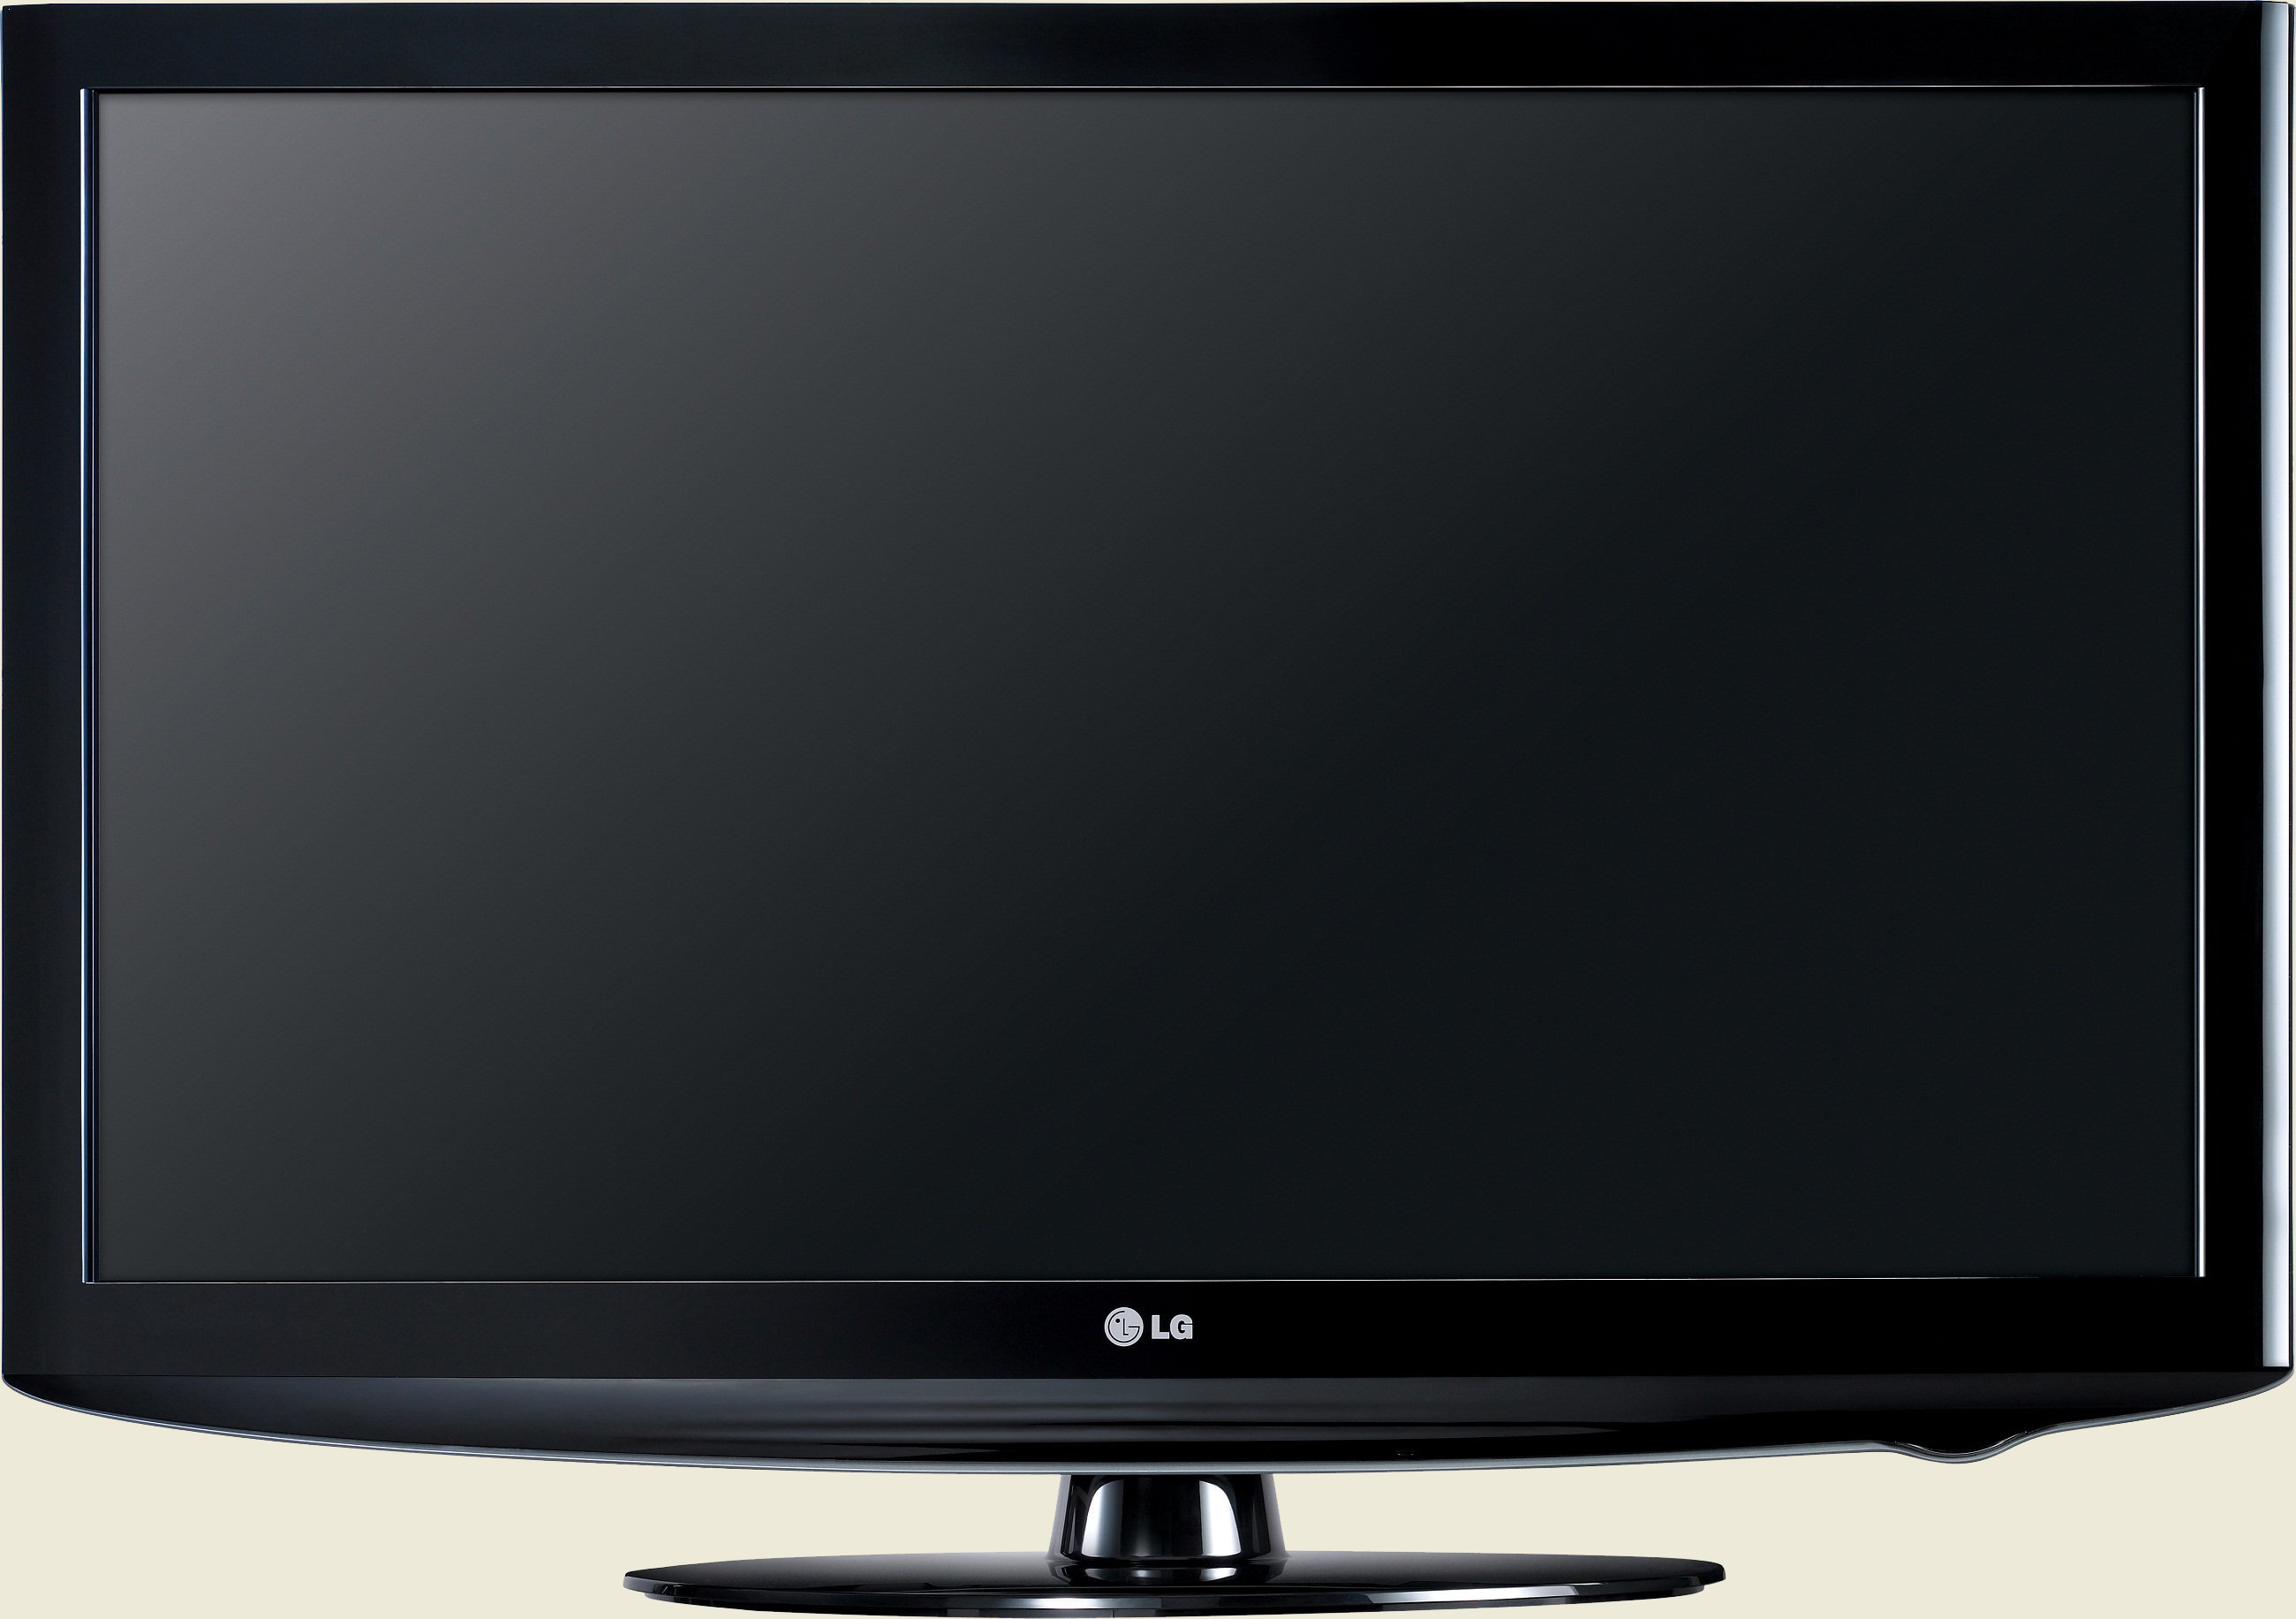 32 lg 1080p led tv bing. Black Bedroom Furniture Sets. Home Design Ideas